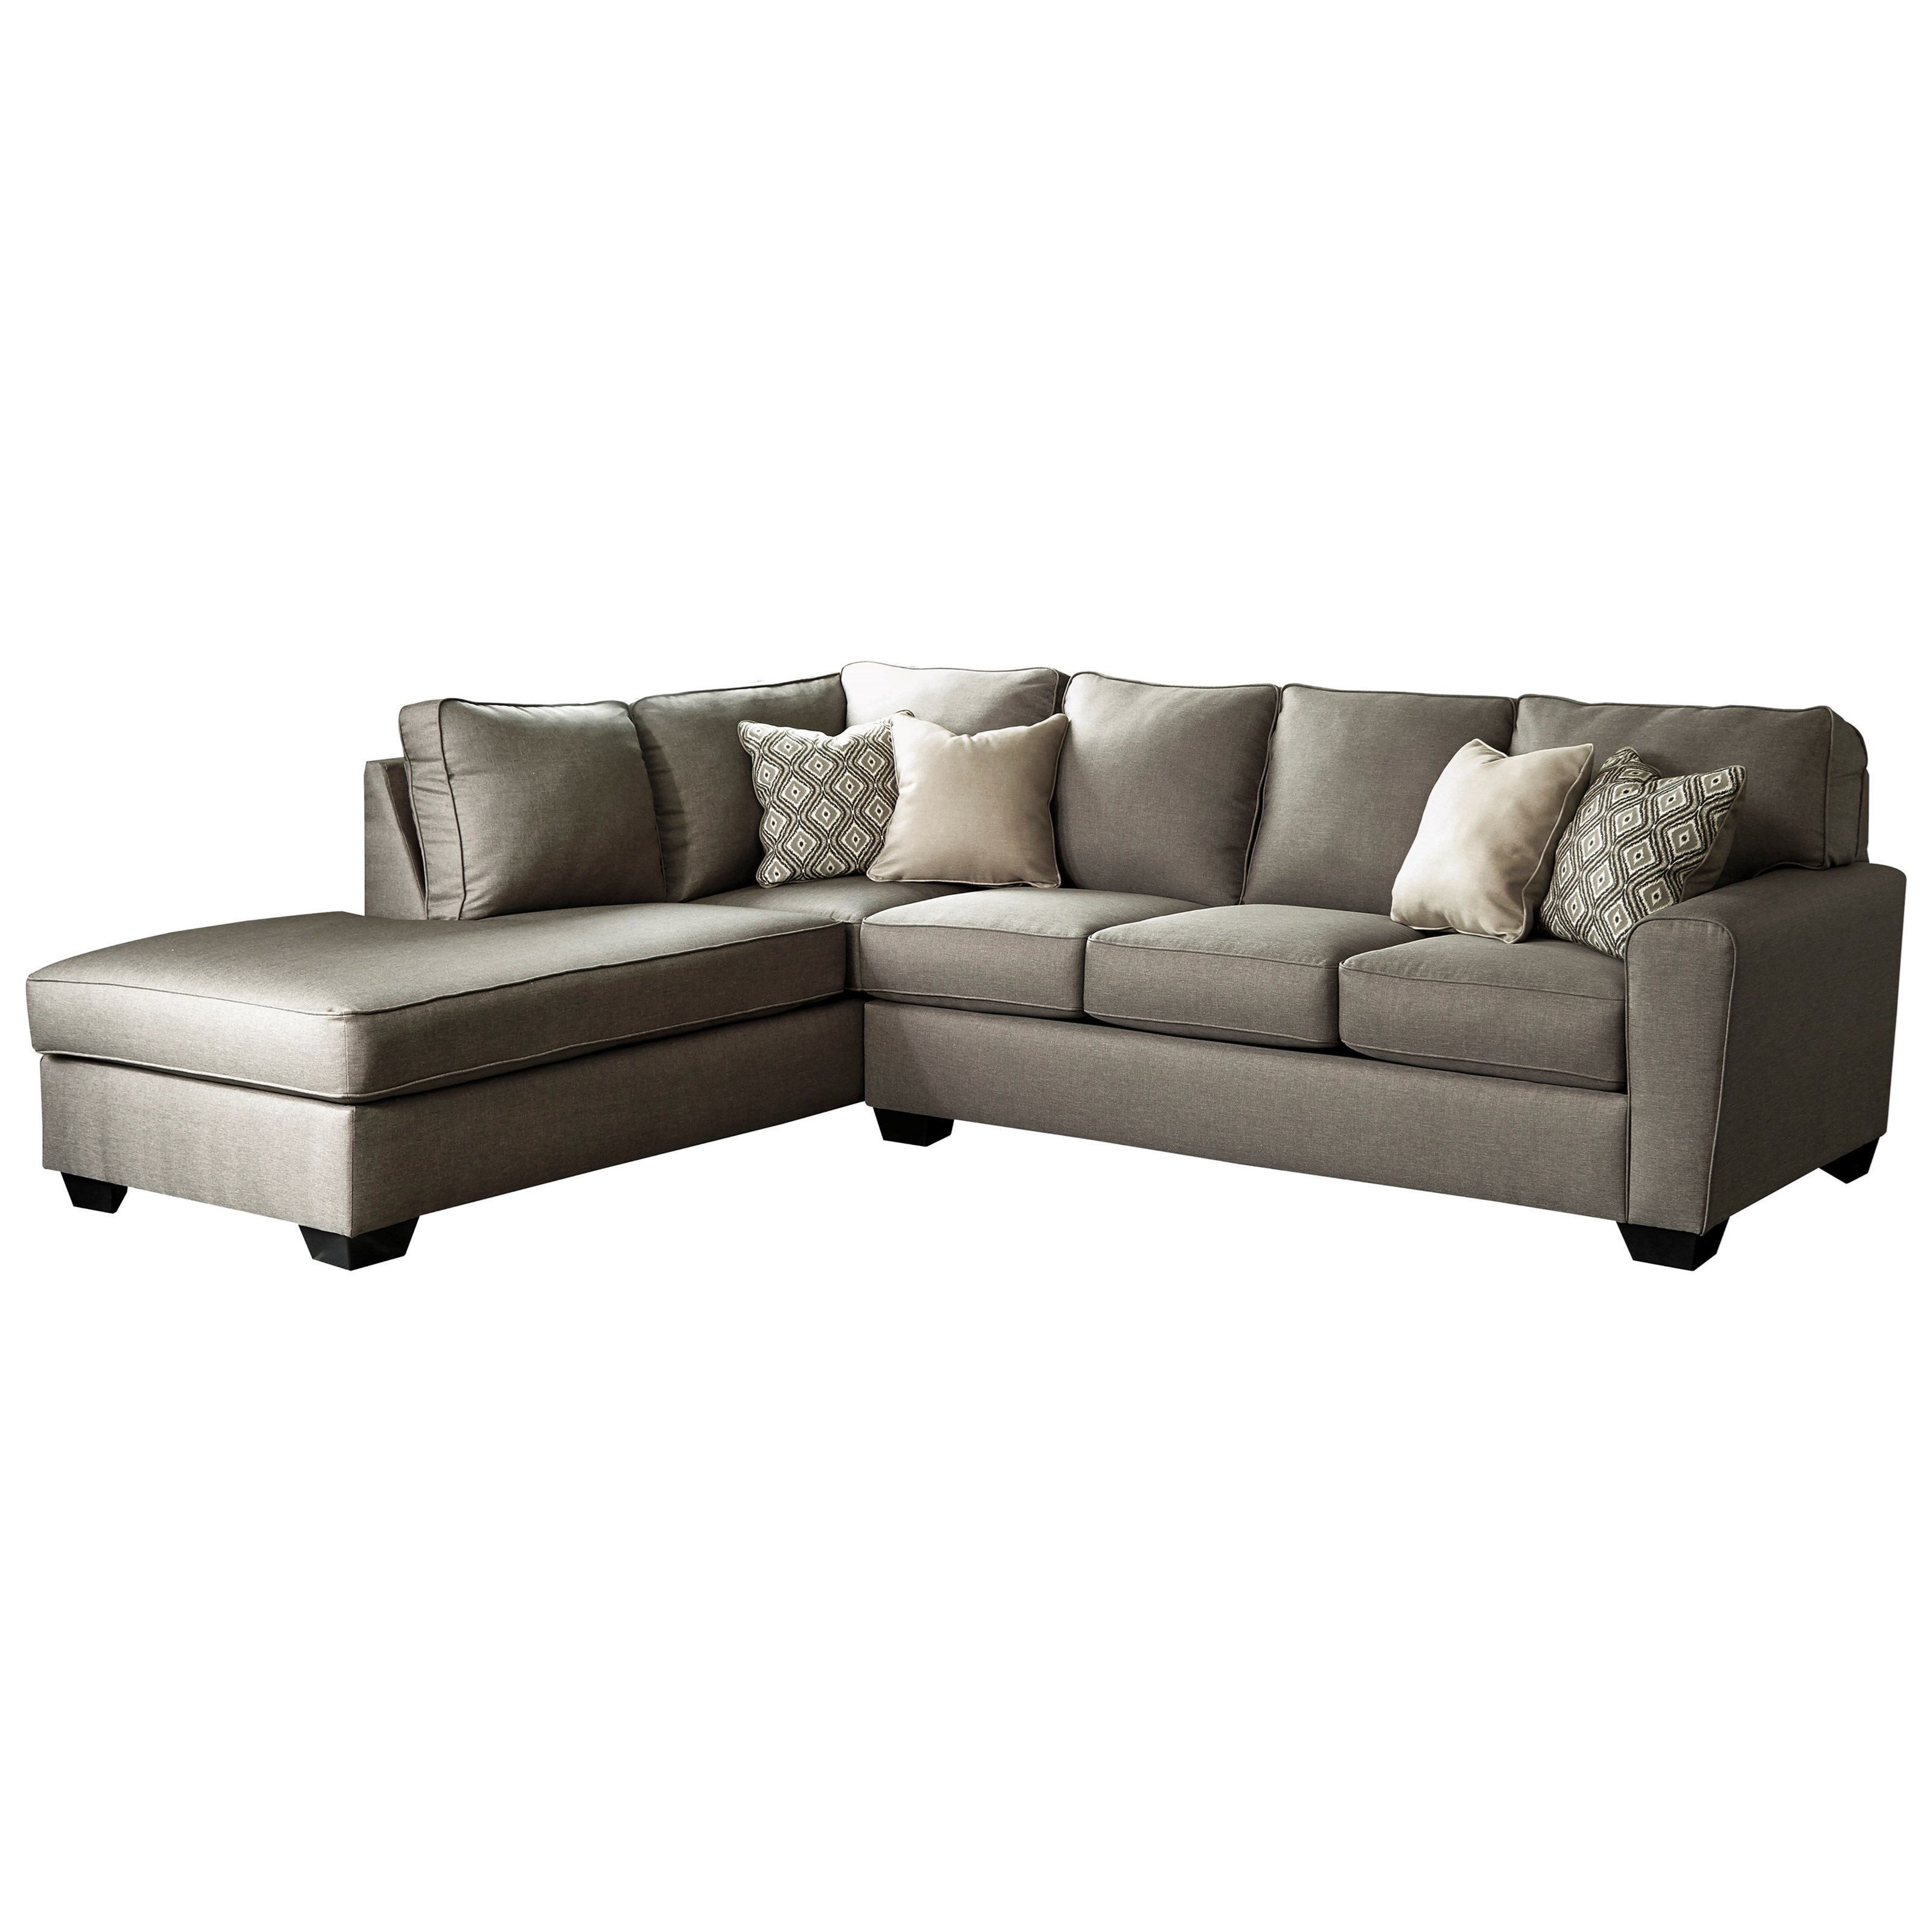 Calicho Sectional with Left Chaise by Benchcraft at Zak's Warehouse Clearance Center